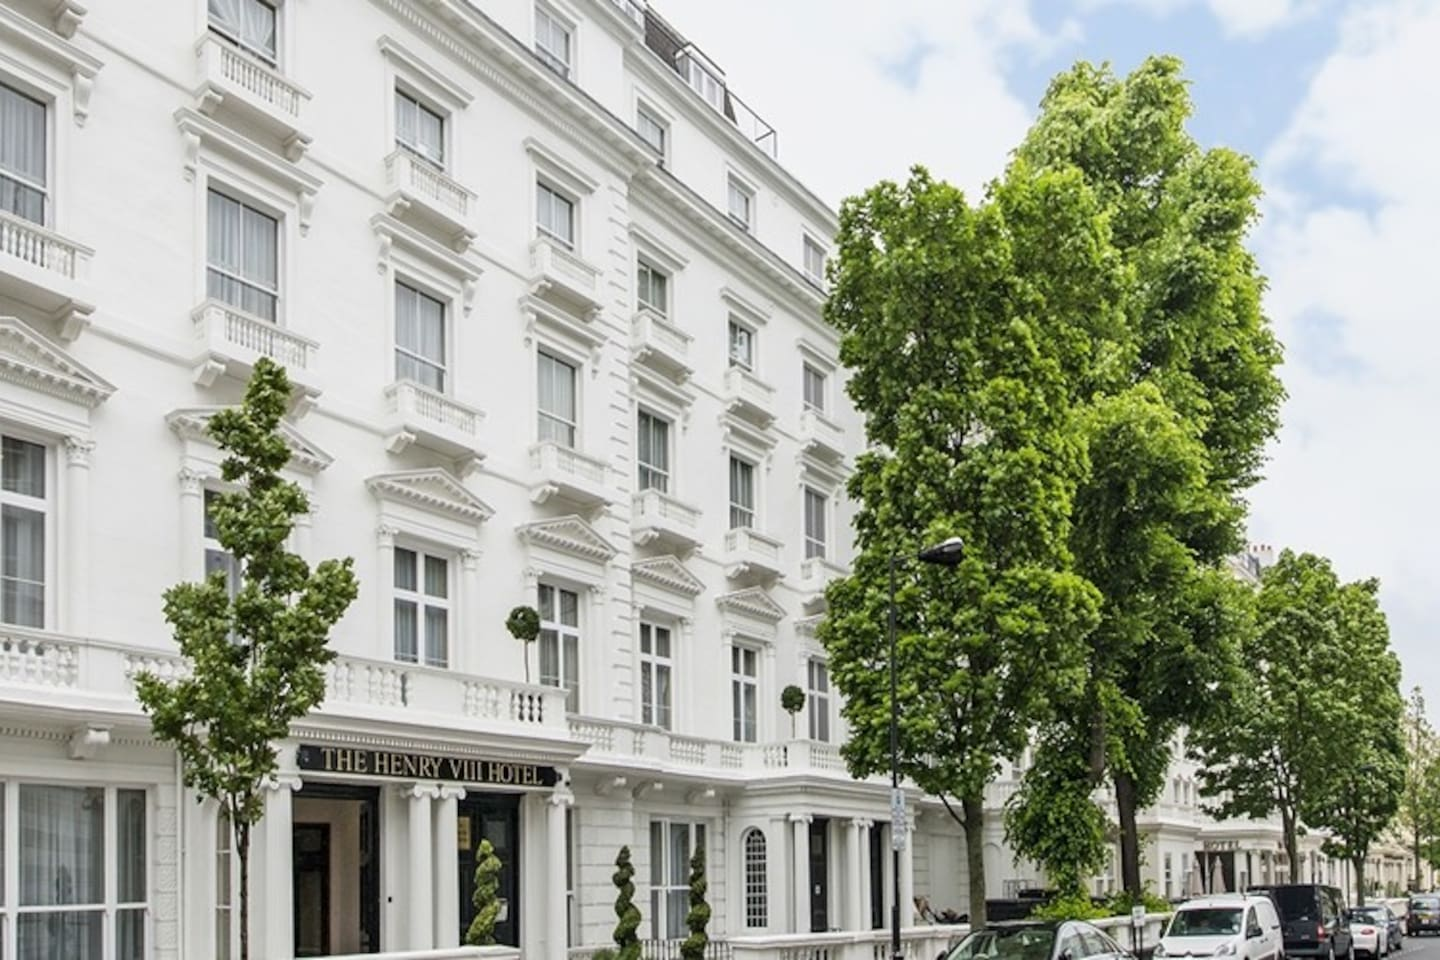 Bayswater is one of the most popular neighbourhoods, as it is a well-connected, residential & safe area. The white stucco buildings create a British classic feeling, whilst people from different nationalities give it a cosmopolitan atmosphere.